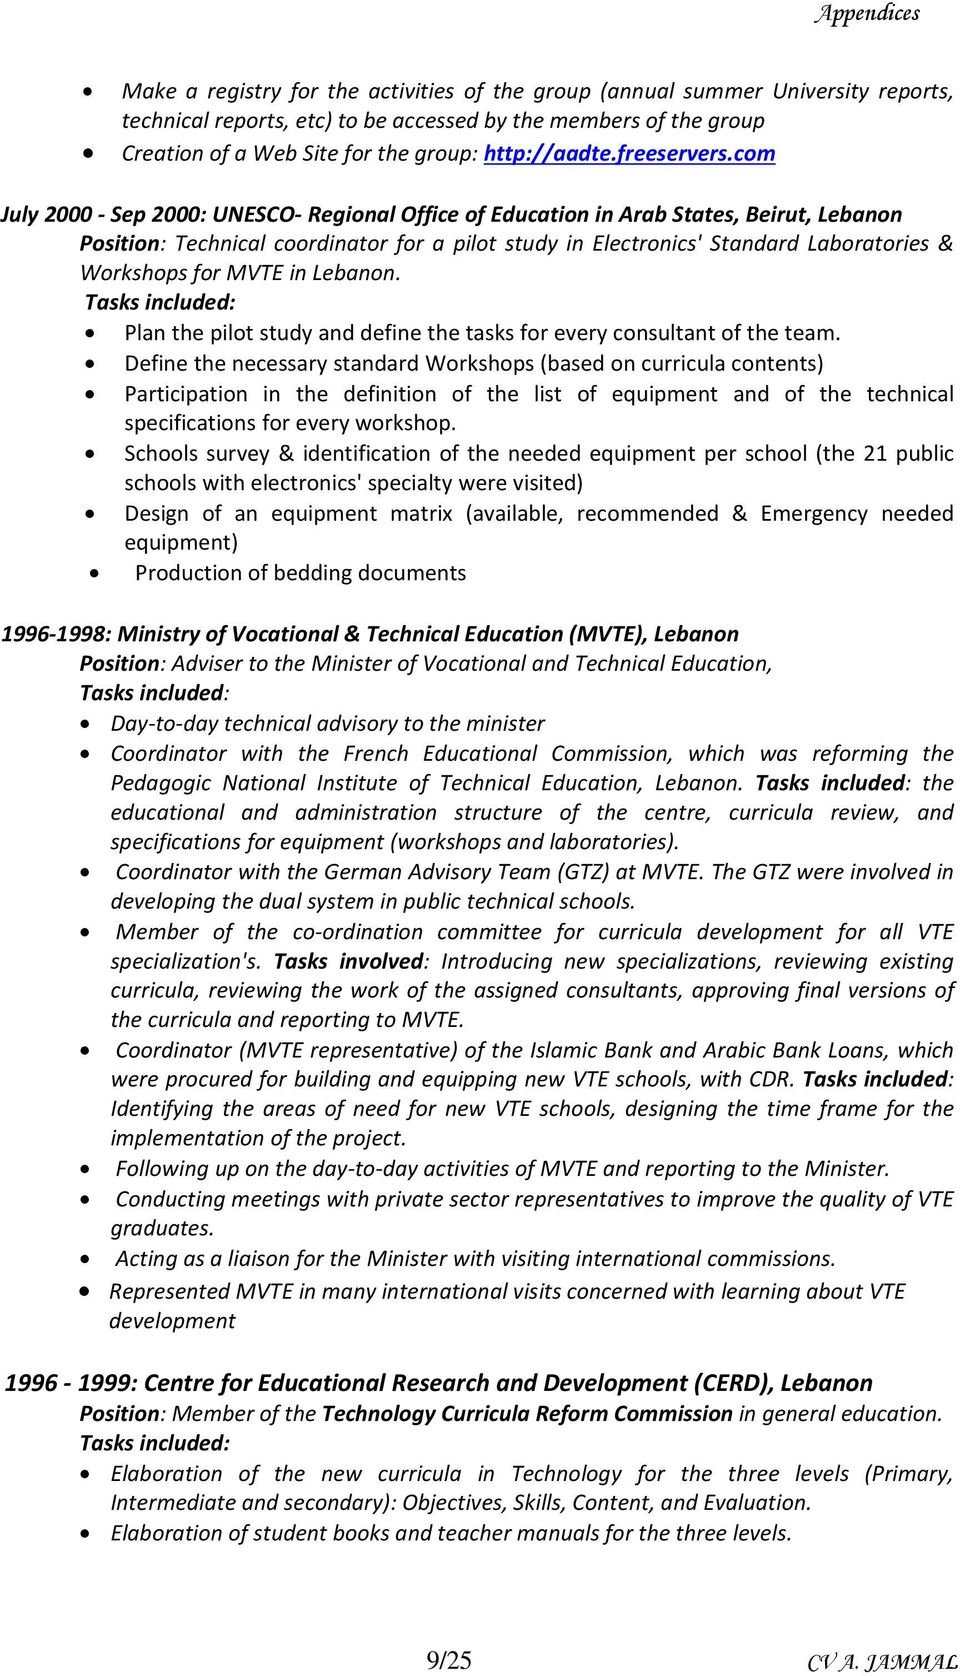 com July 2000 Sep 2000: UNESCO Regional Office of Education in Arab States, Beirut, Lebanon Position: Technical coordinator for a pilot study in Electronics' Standard Laboratories & Workshops for